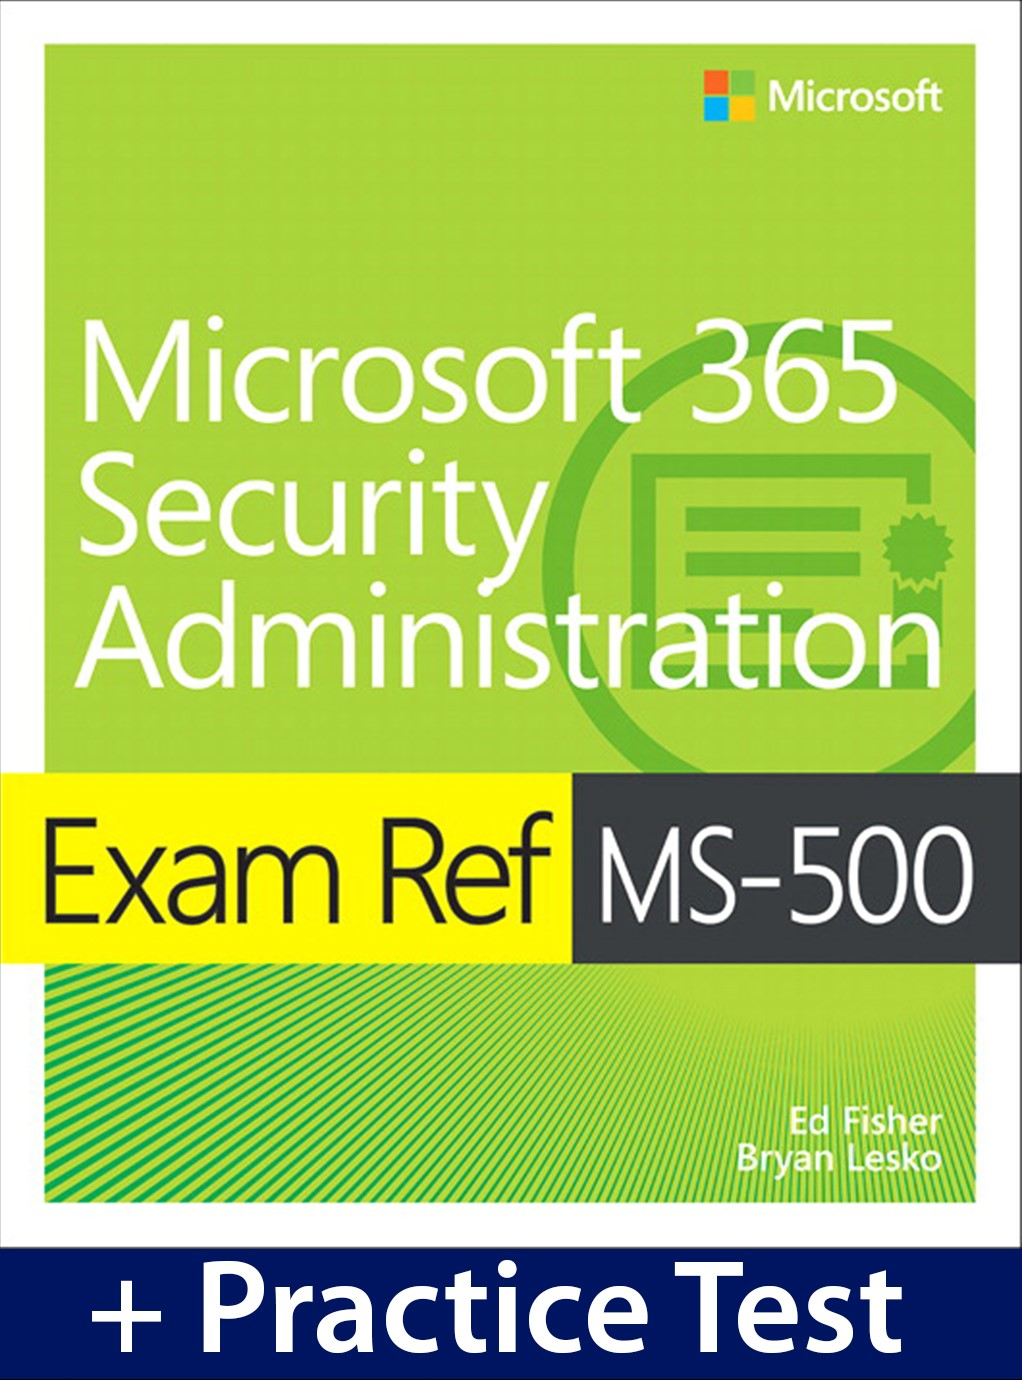 Exam Ref MS-500 Microsoft 365 Security Administration with Practice Test